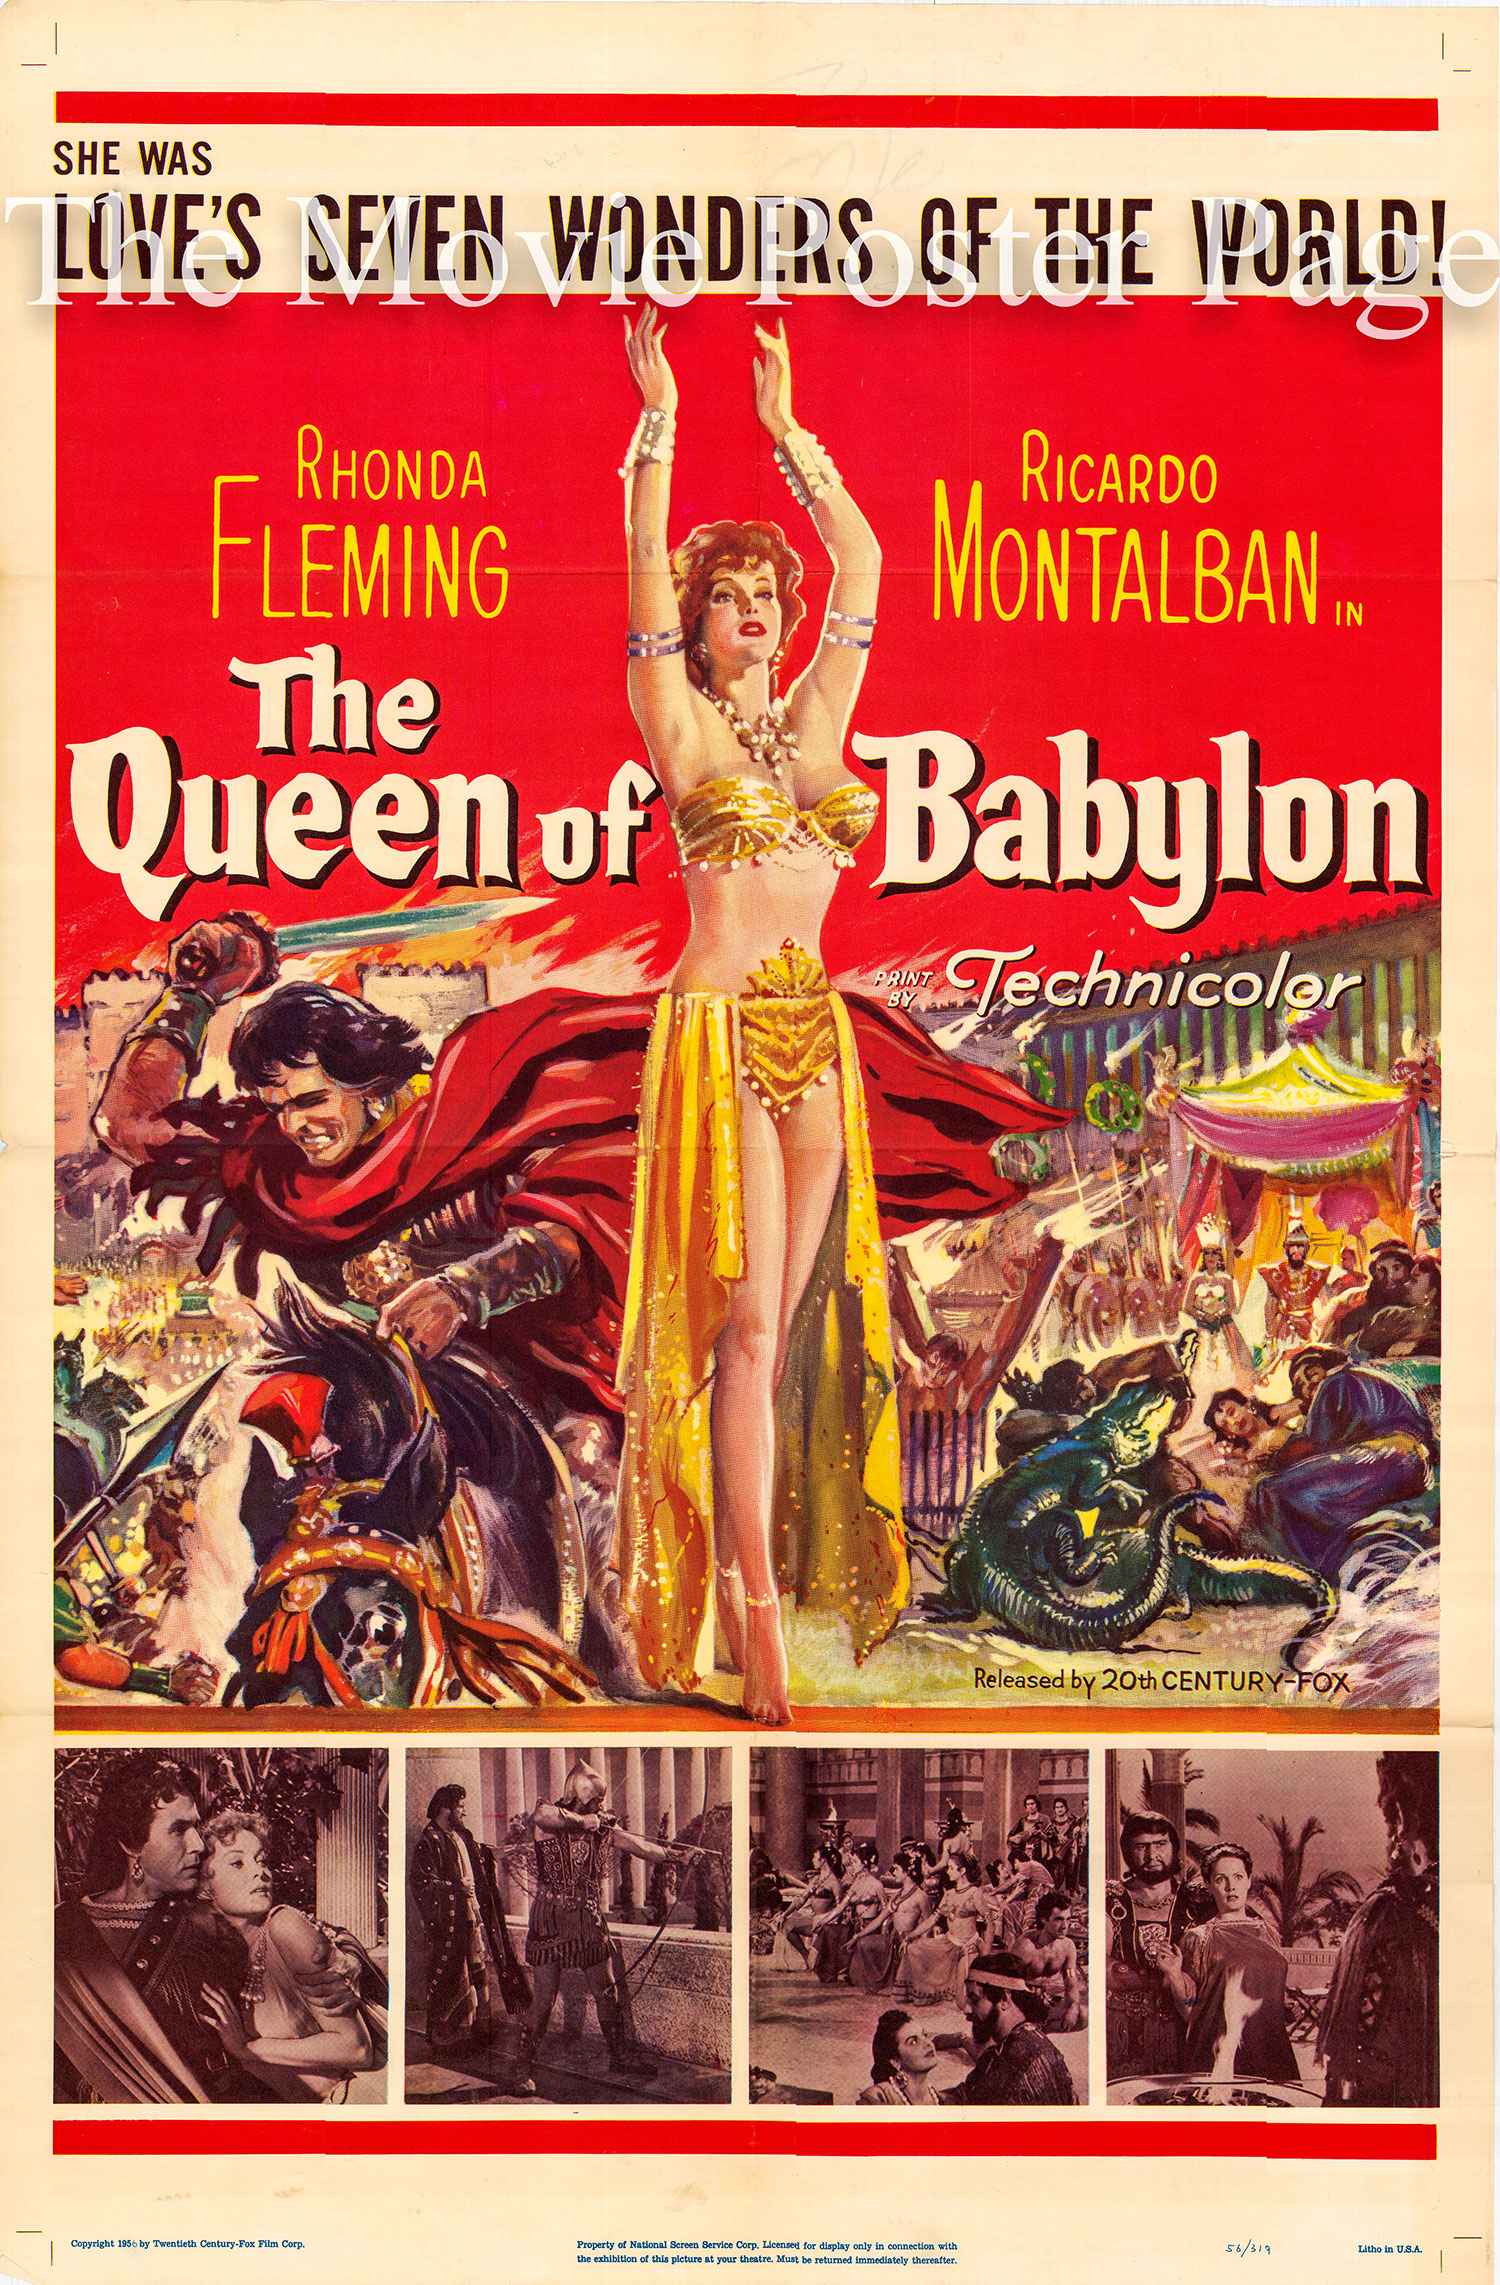 Pictured is a US one-sheet for the 1955 Carlo Ludovico Bragaglia film The Queen of Babylon starring Rhonda Fleming.